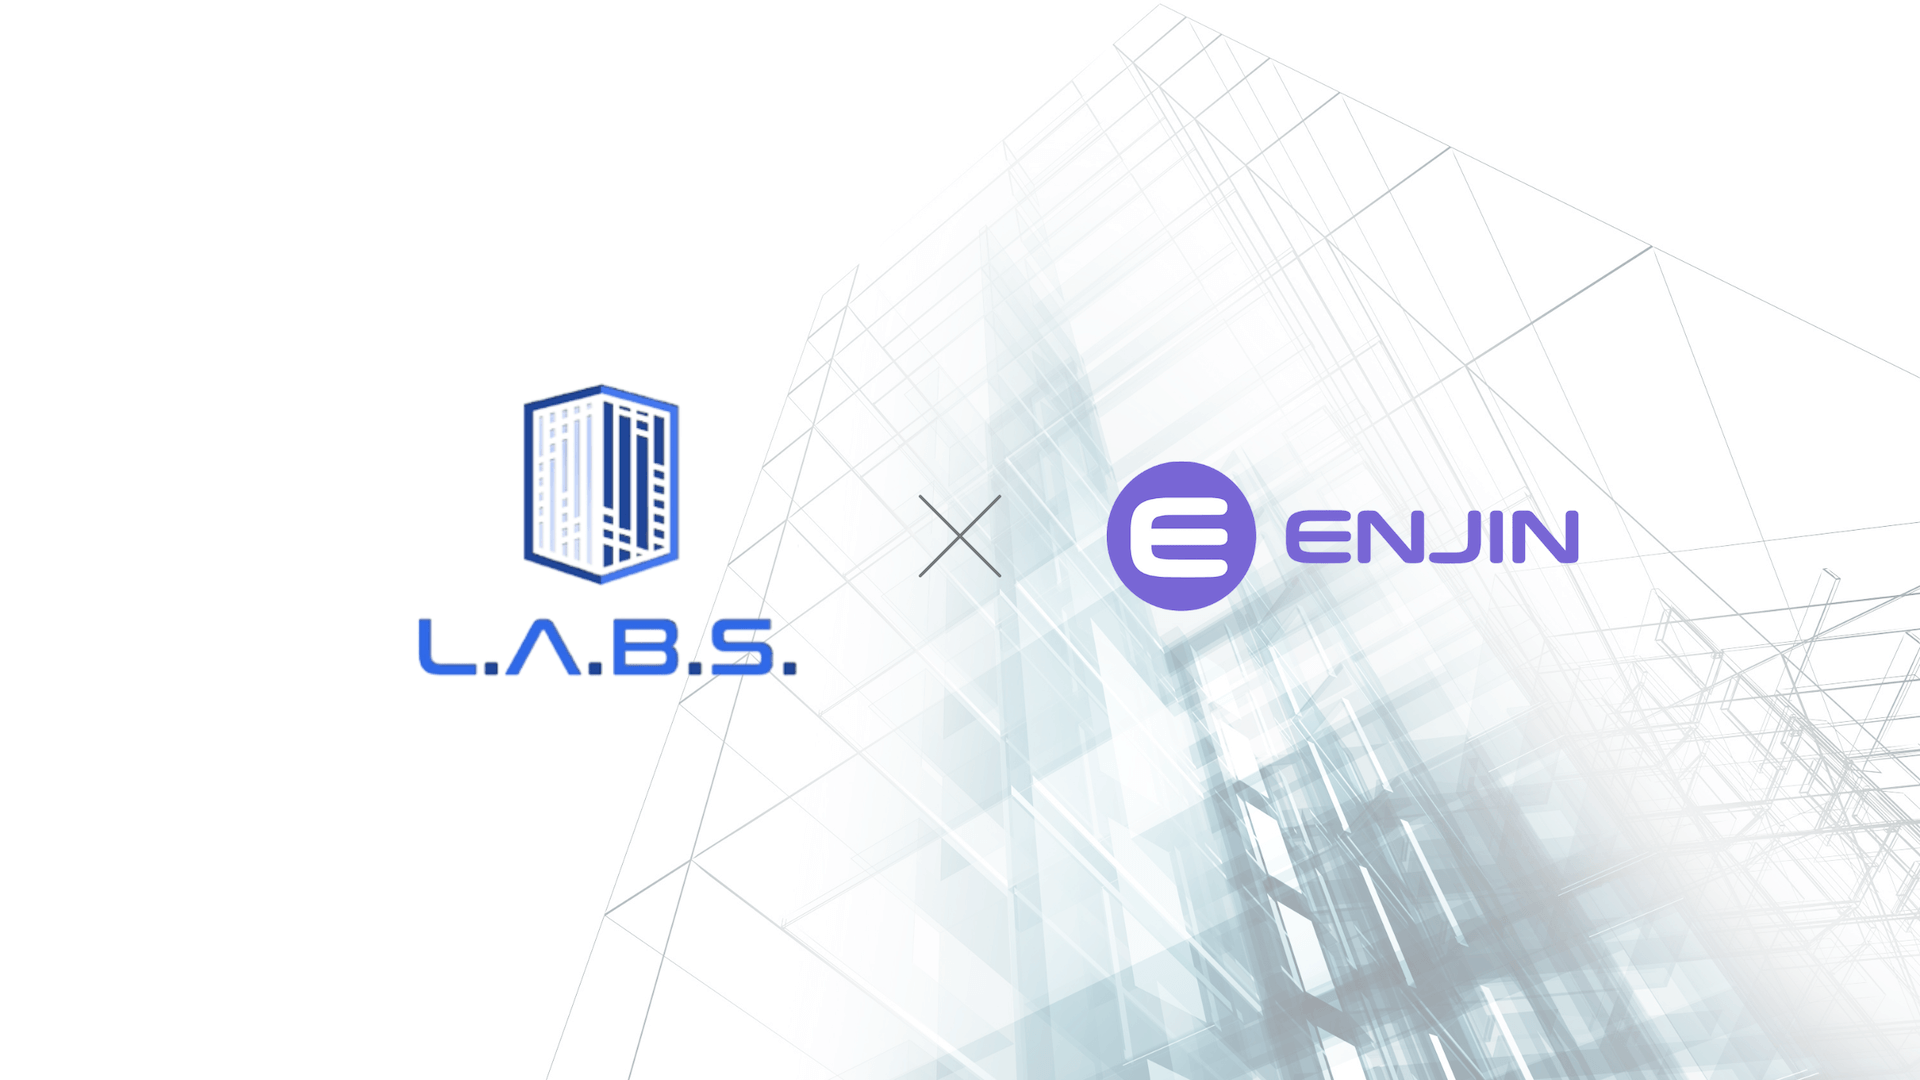 Press Release: Enjin & LABS Group to Democratize Real Estate Industry with NFT Property Titles | Enjin